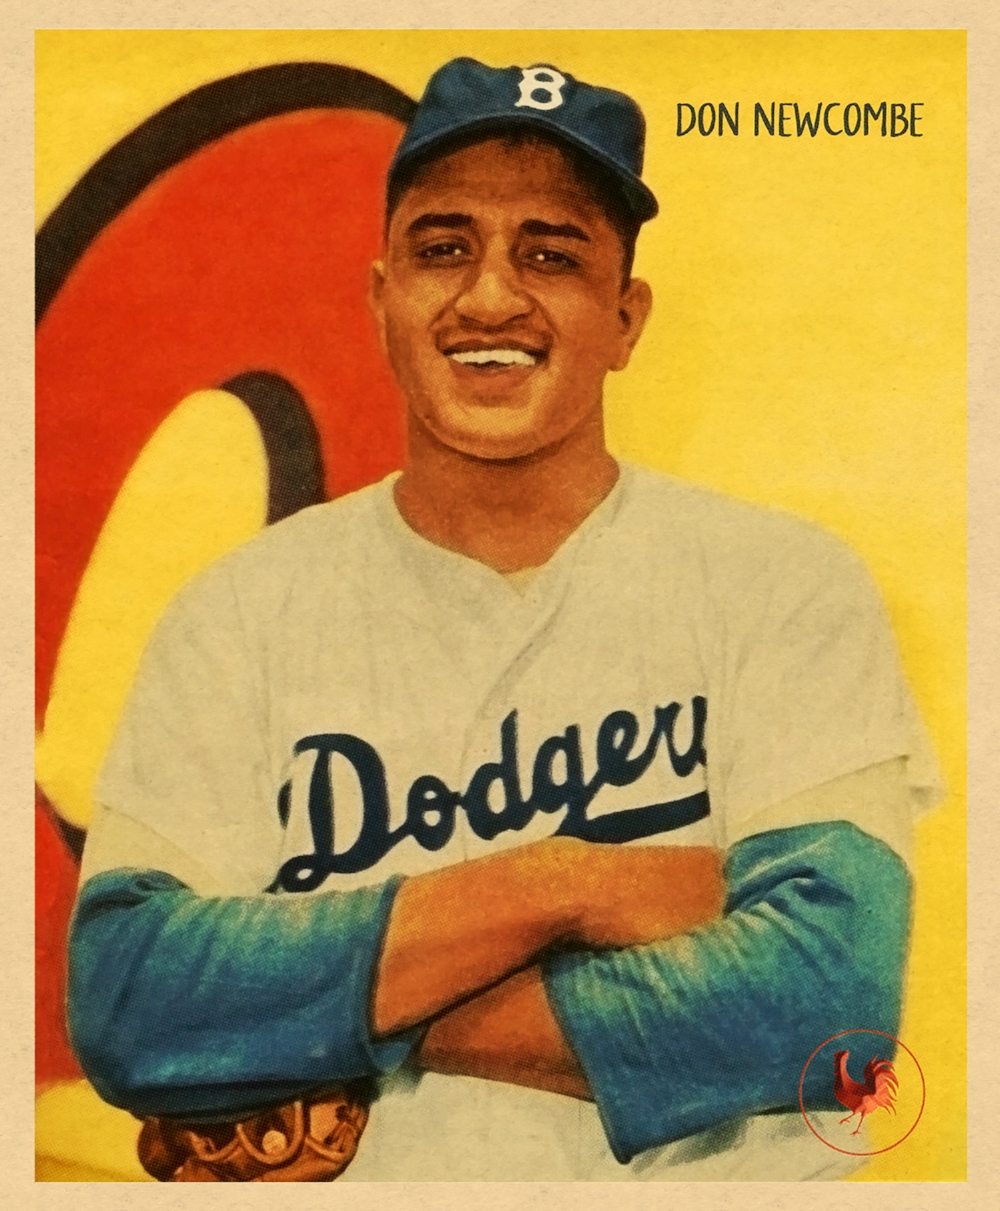 1950 R319 SERIES - DON NEWCOMBE (RC) 4/3/17 Auction Closes at 111.50 USD - Current Population of 2